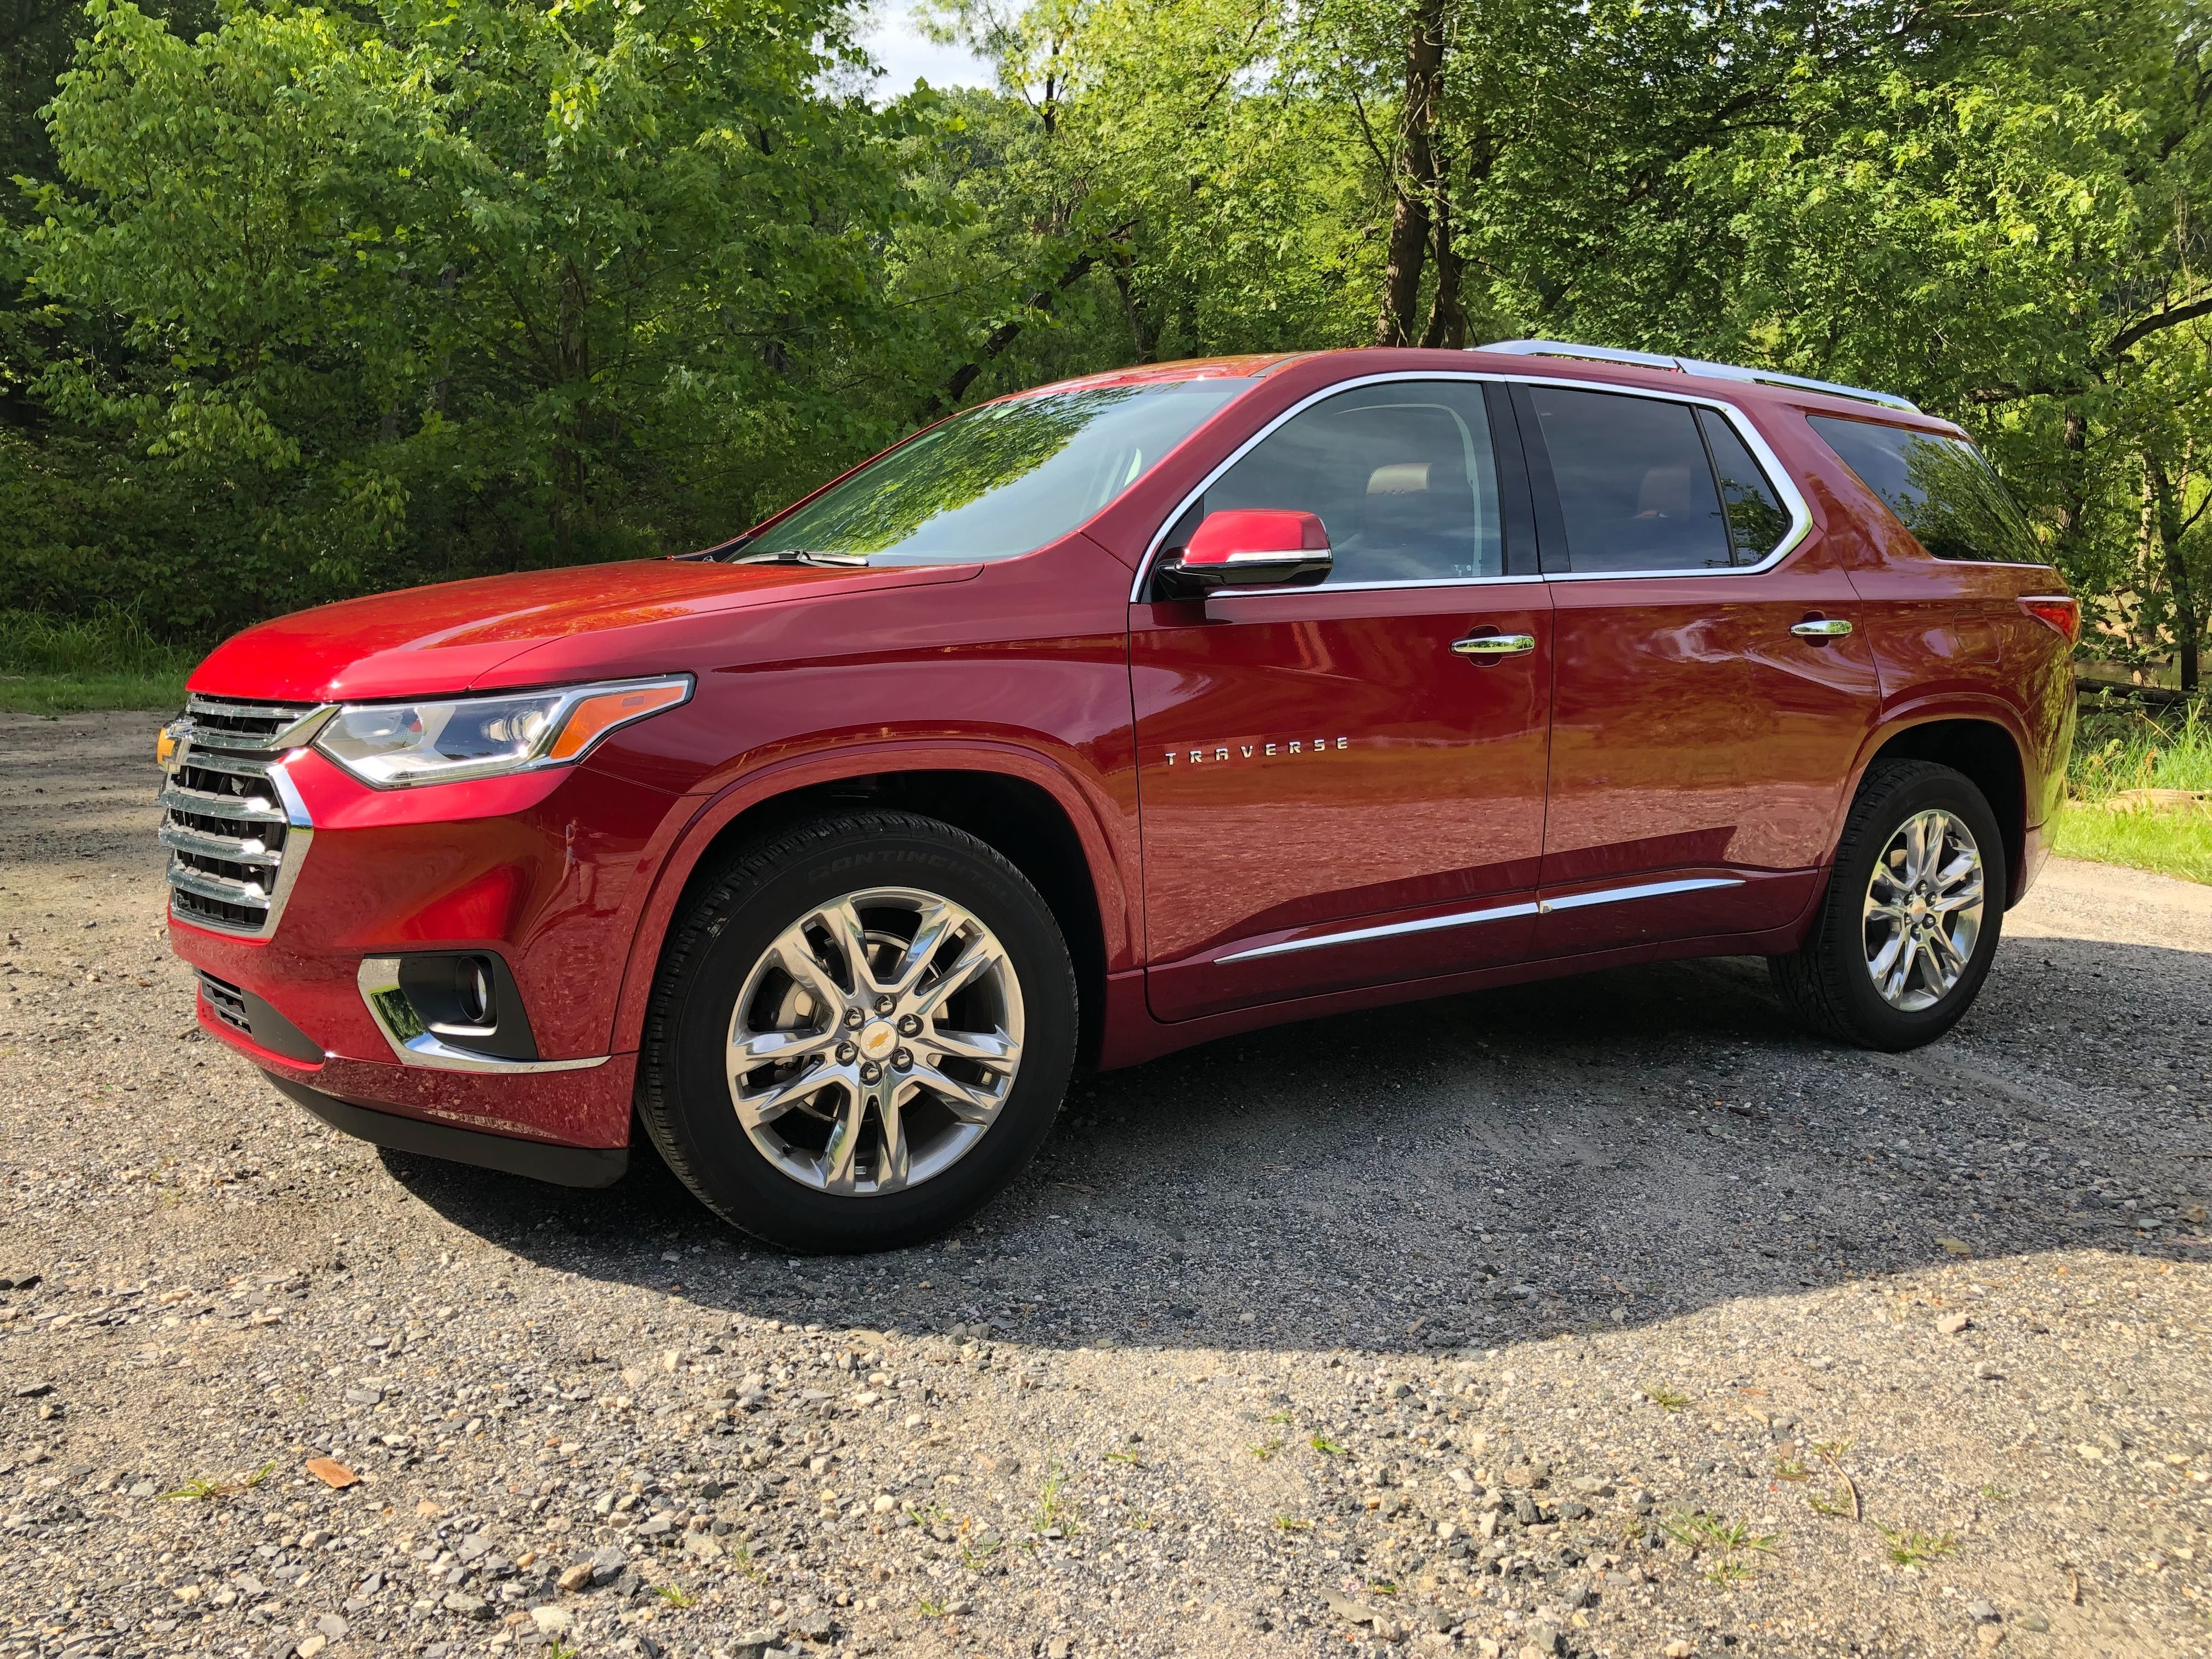 Car Review Chevrolet Traverse High Country Is Luxurious Crossover With Space That Puts Bigger Suvs To Shame Wtop